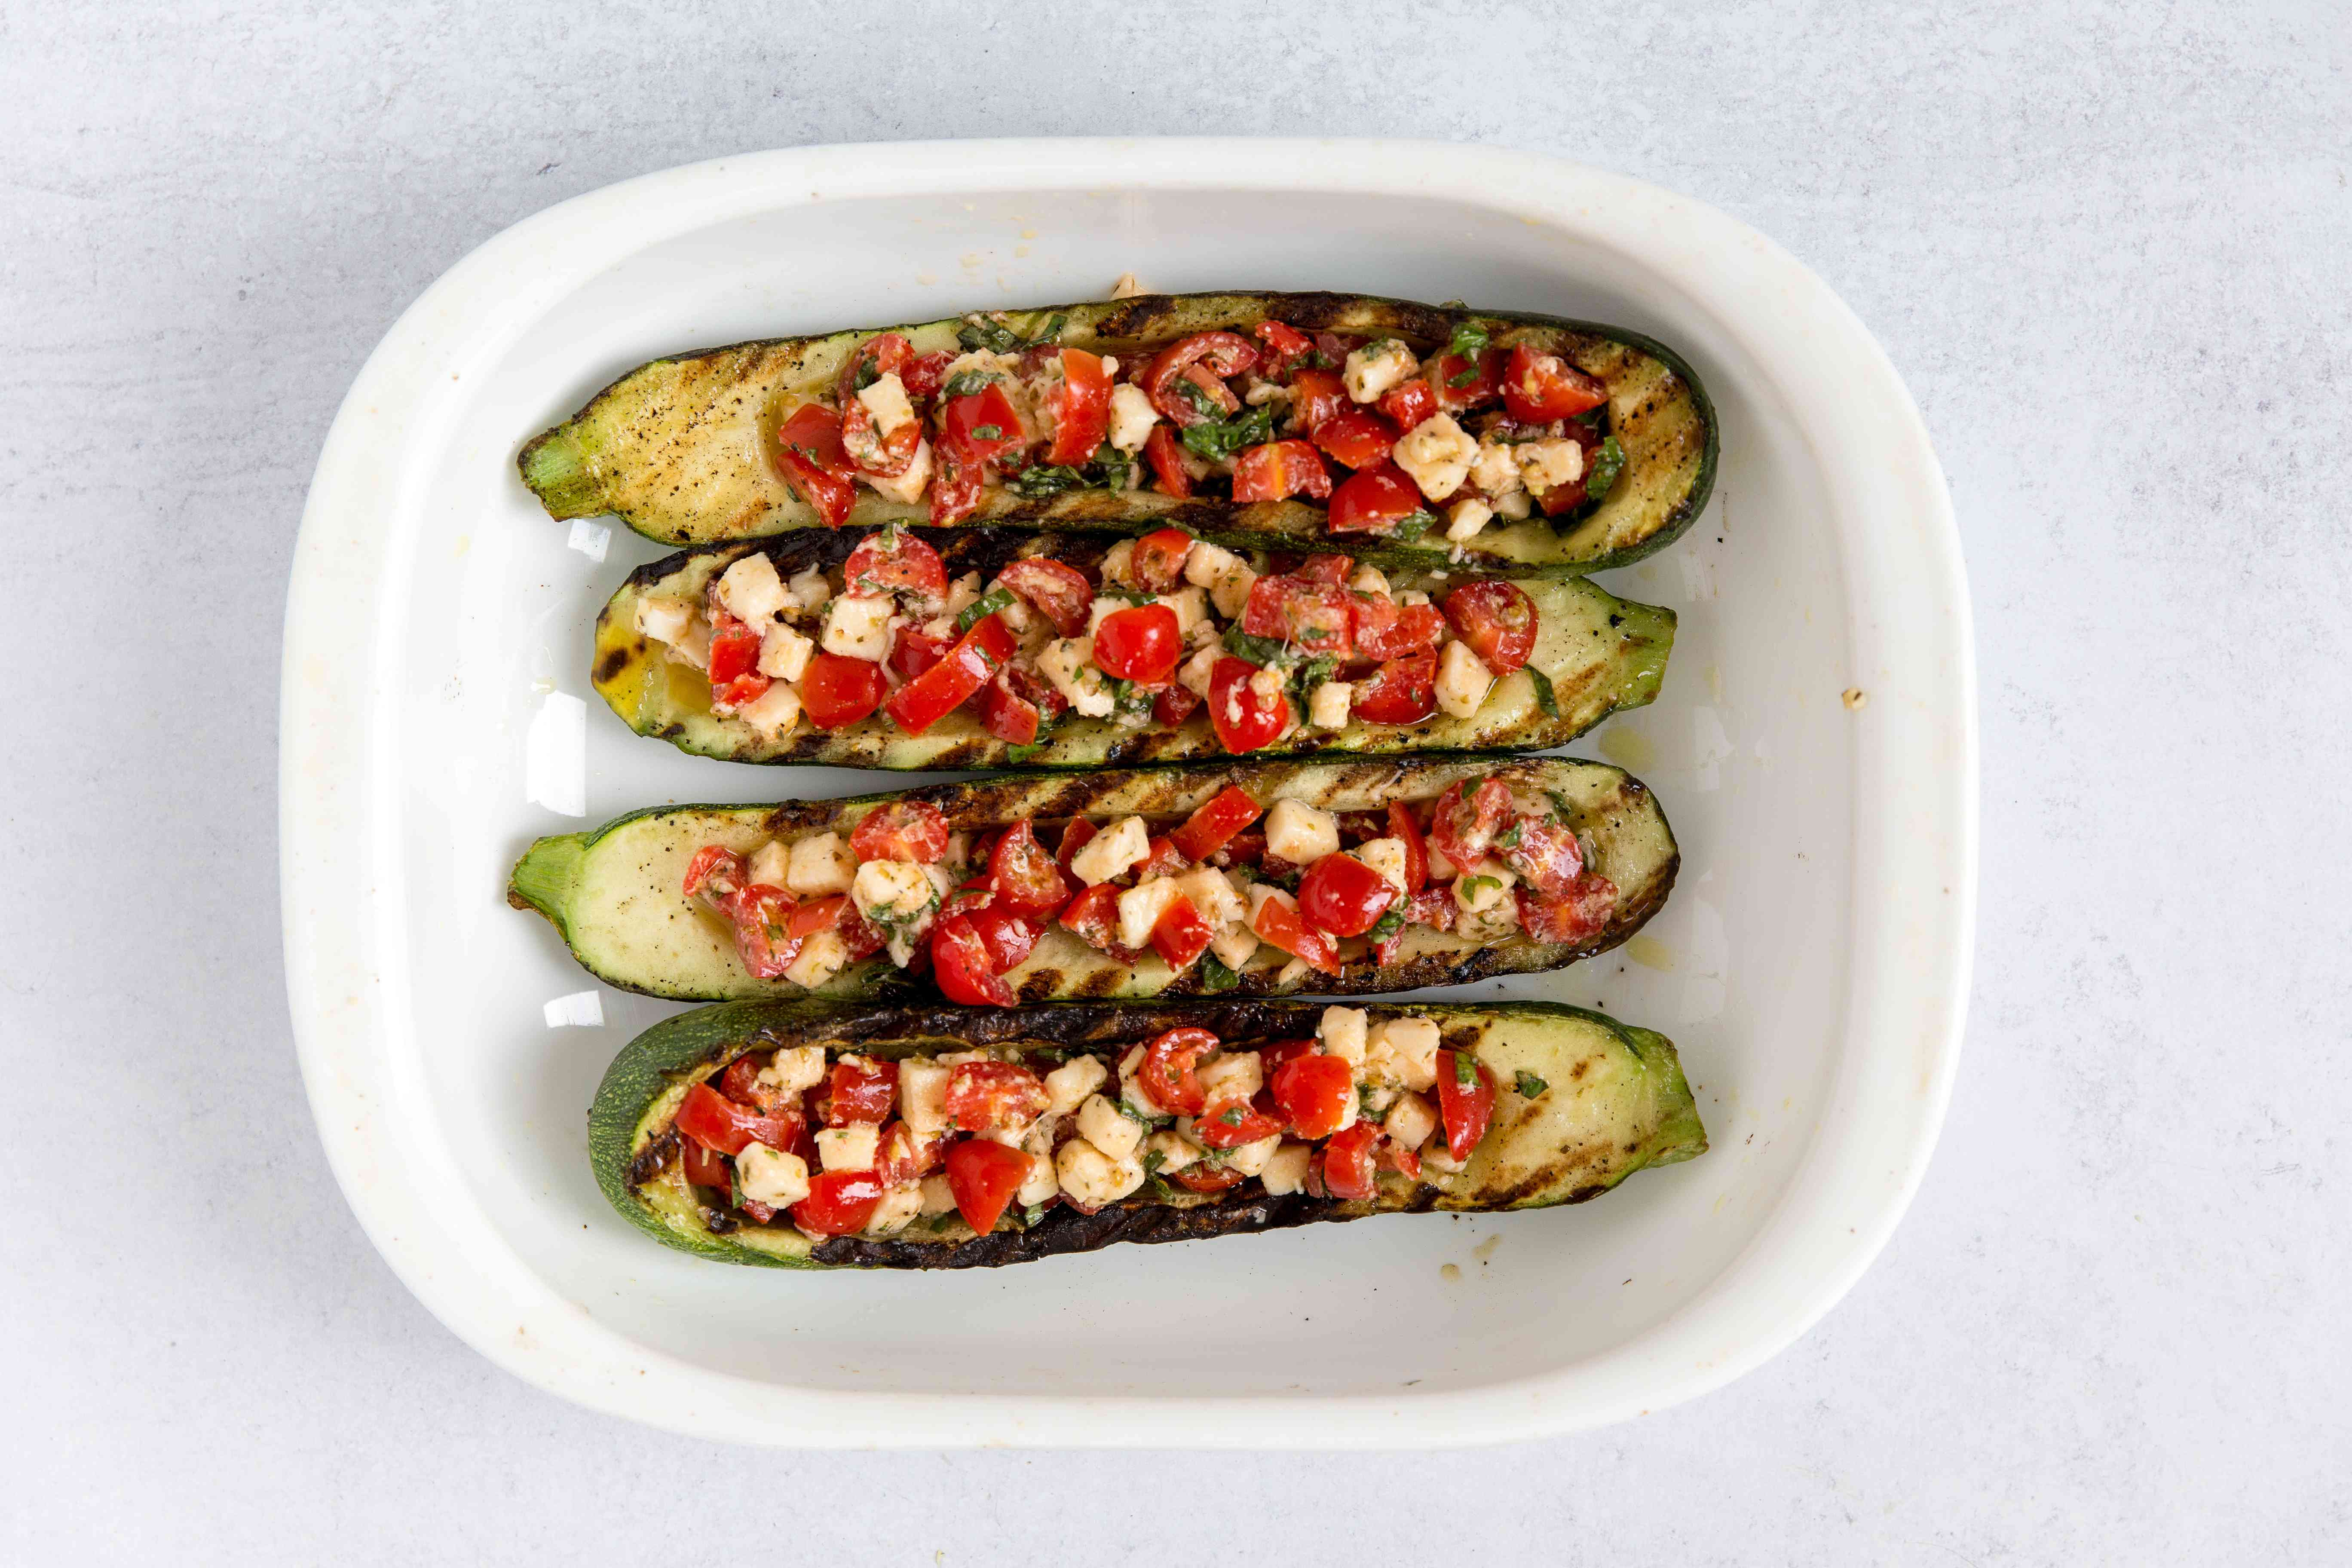 Zucchini boats filled with filling to make grilled zucchini stuffed with tomatoes, mozzarella, and basil.